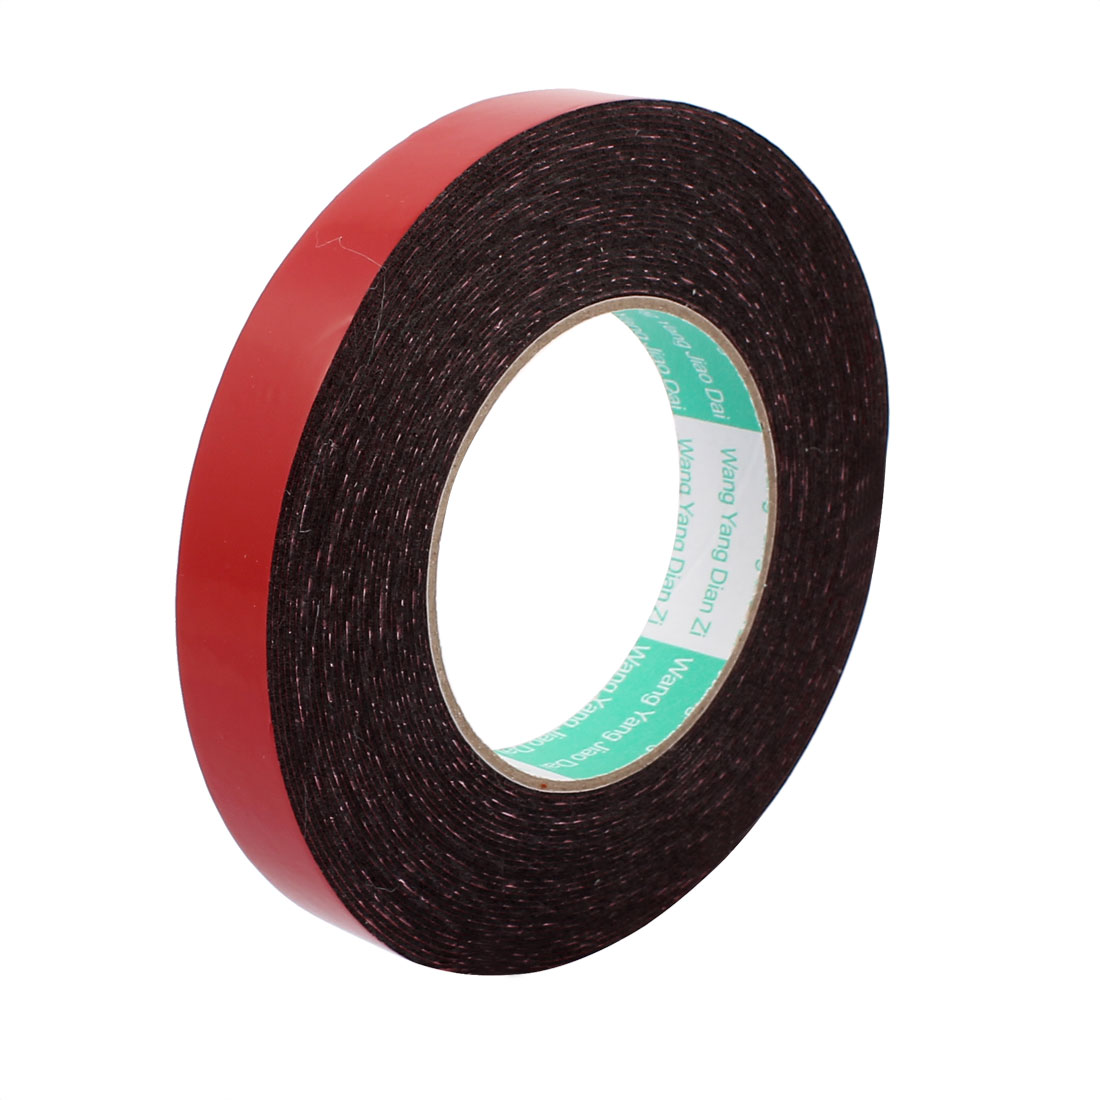 20mm x 1mm Double Sided Self Adhesive Shockproof Sponge Foam Tape 10M Length